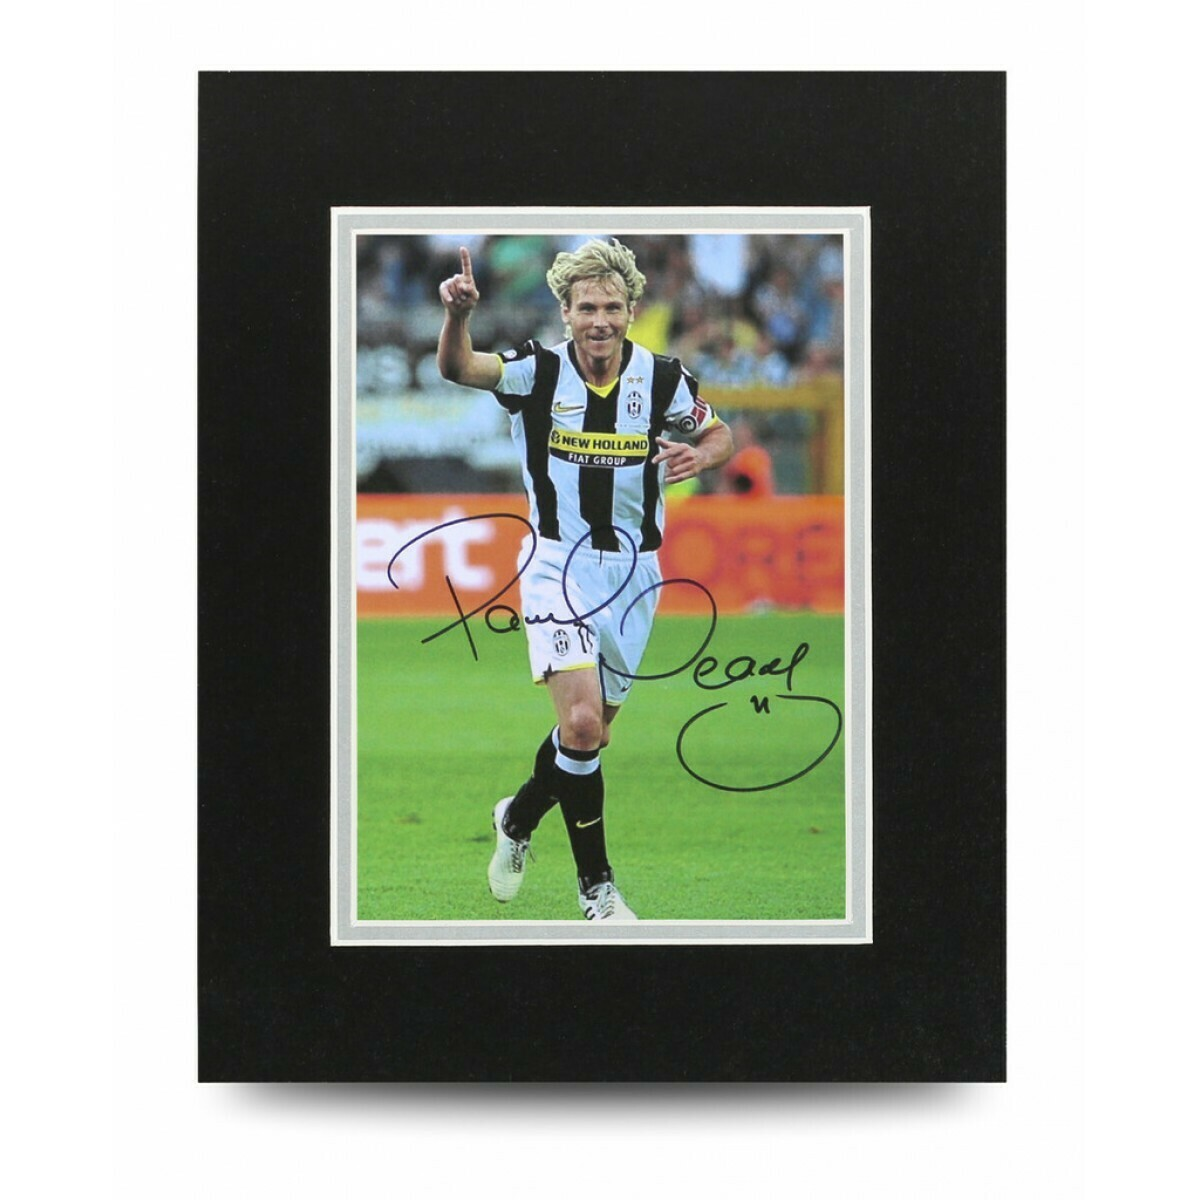 PAVEL NEVDED PHOTO NEDVDED  10*8 DISPLAY  AUTOGRAFATA SIGNED AUTOGRAPH SIGNED PAVEL NEVDED PHOTO SIGNED JUVENTUS